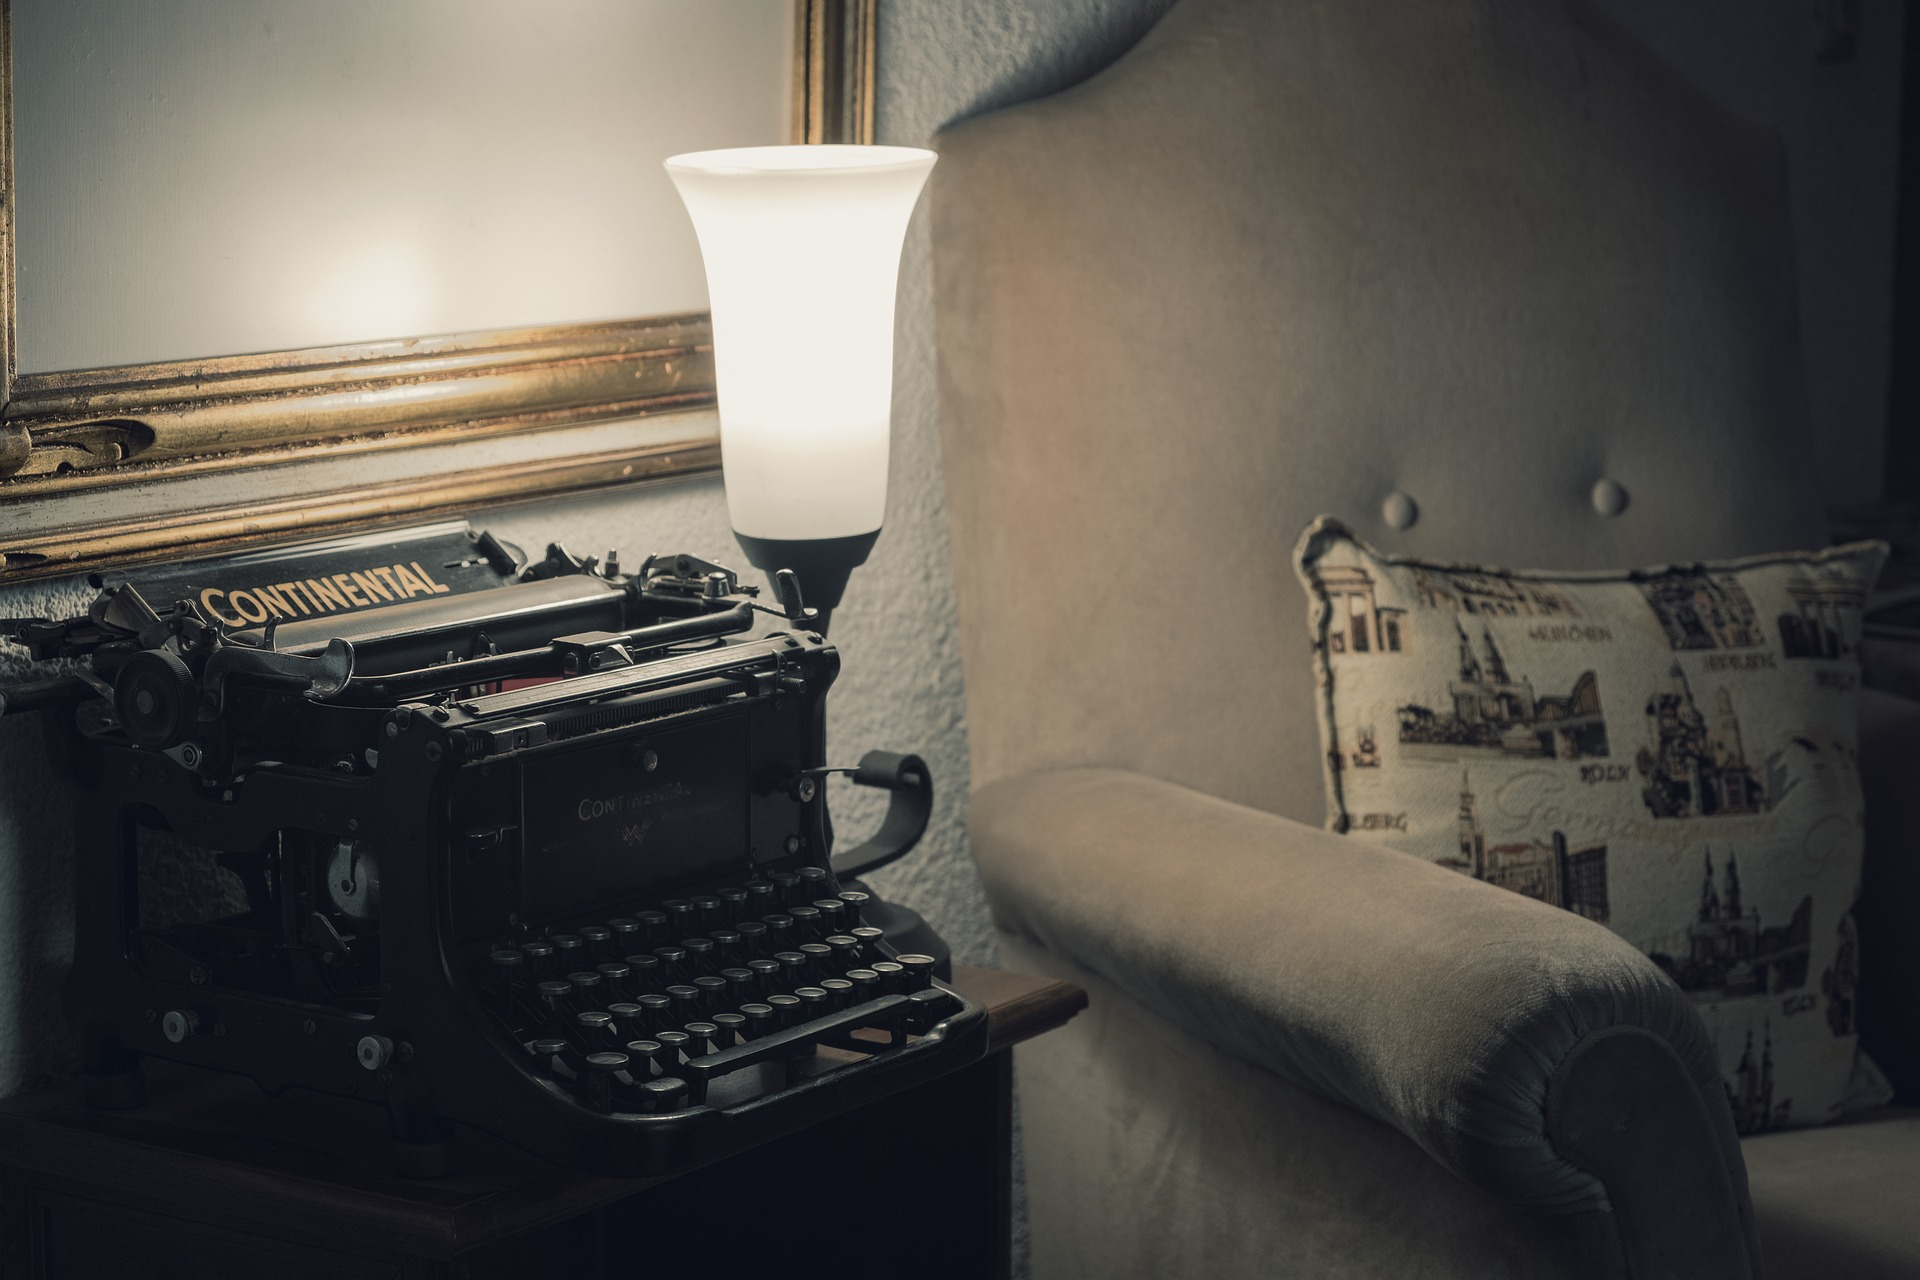 Is there any difference in the process of hiring an editor as an established writer versus a novice writer?